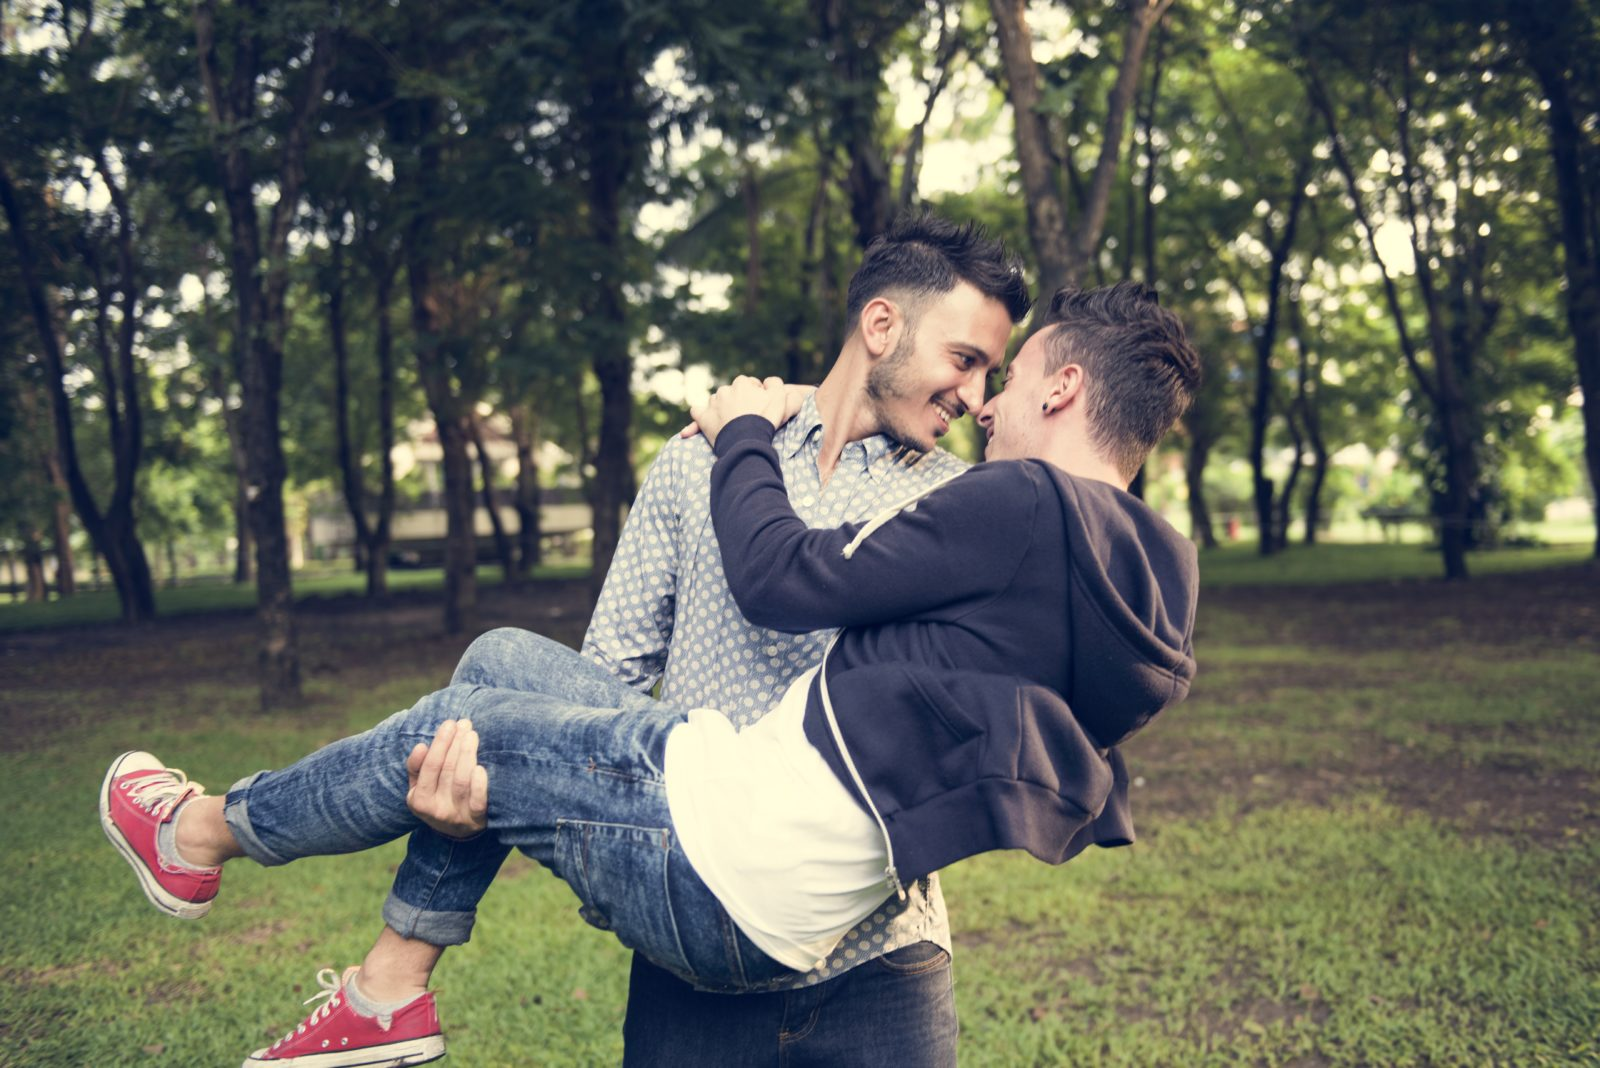 Does having an older brother make you gay?